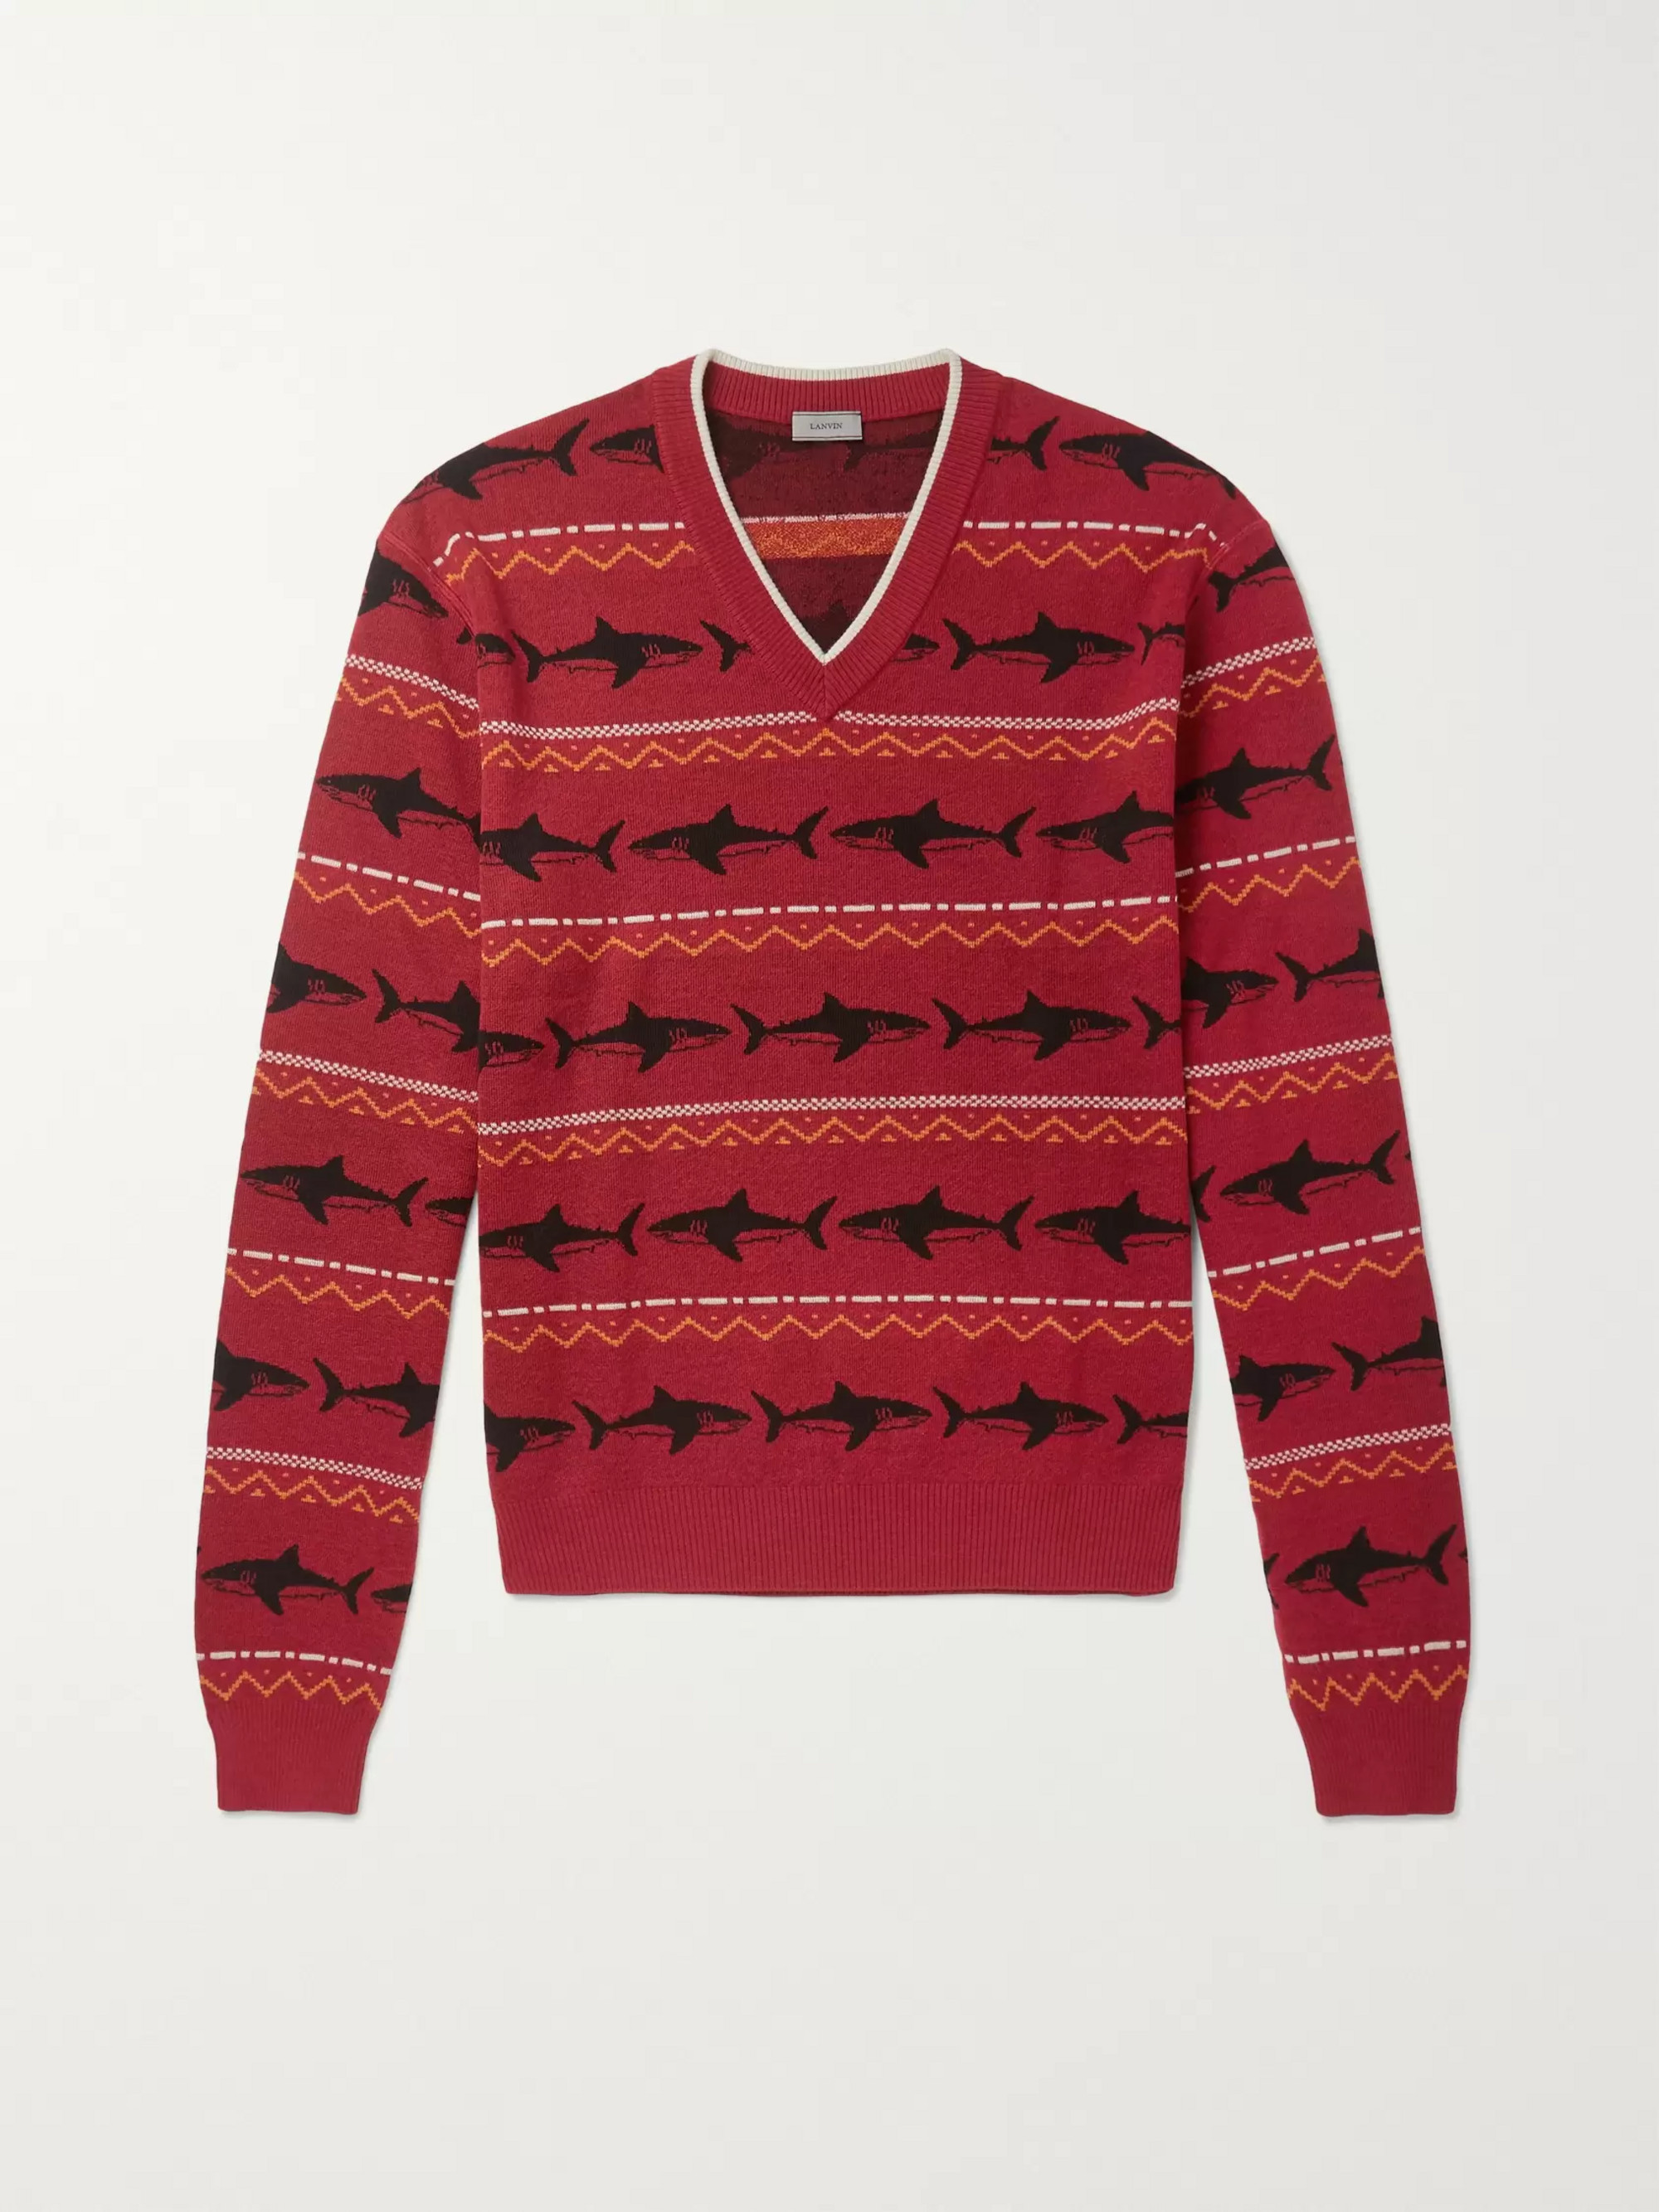 Lanvin Shark-Intarsia Merino Wool Sweater